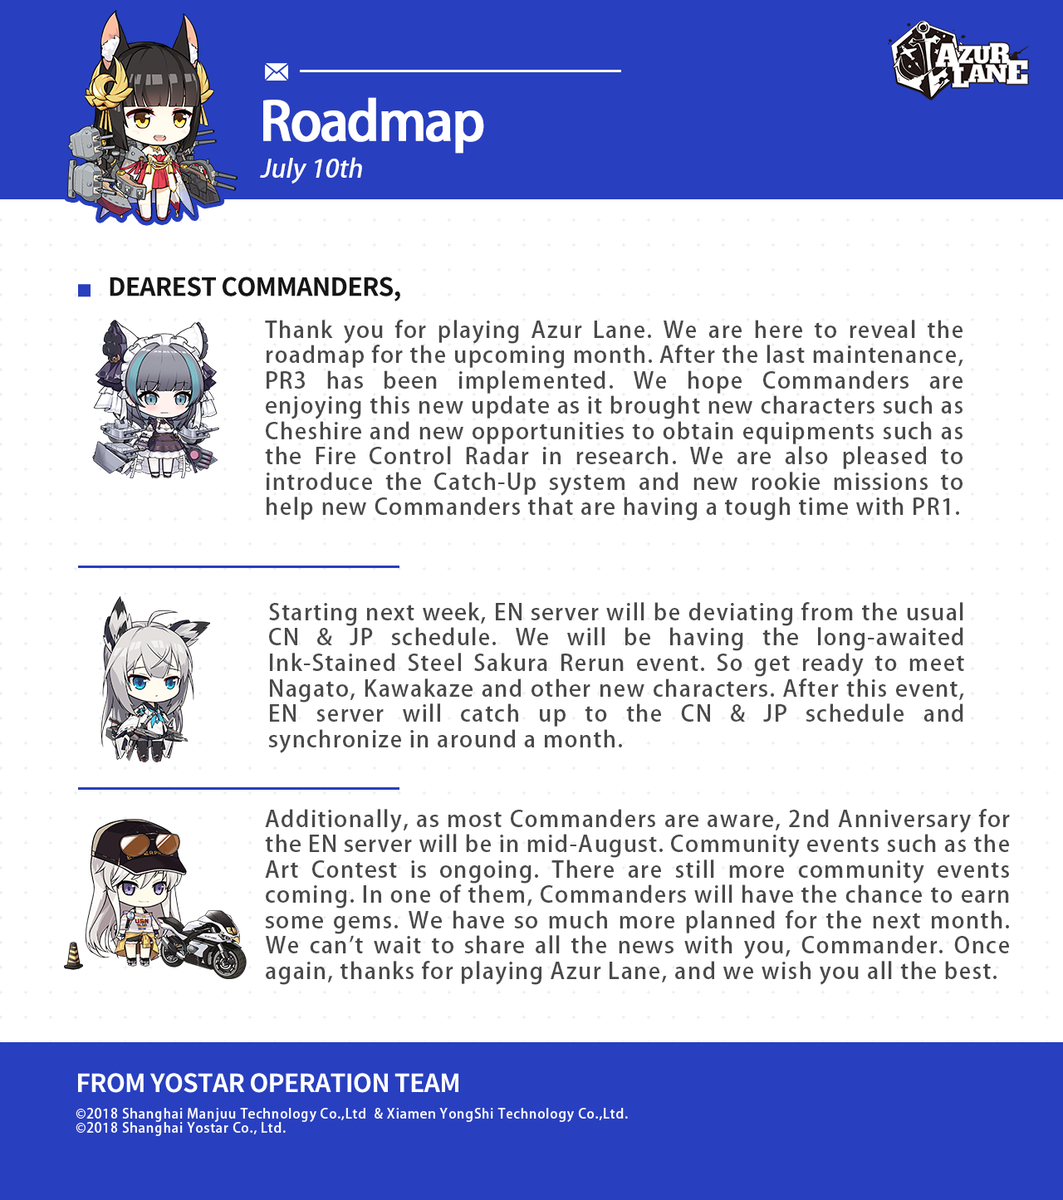 Dear Commanders, Thank you for continuous support of Azur Lane. We would like to express our gratitude and reveal the roadmap for the upcoming month. #AzurLane #Yostar